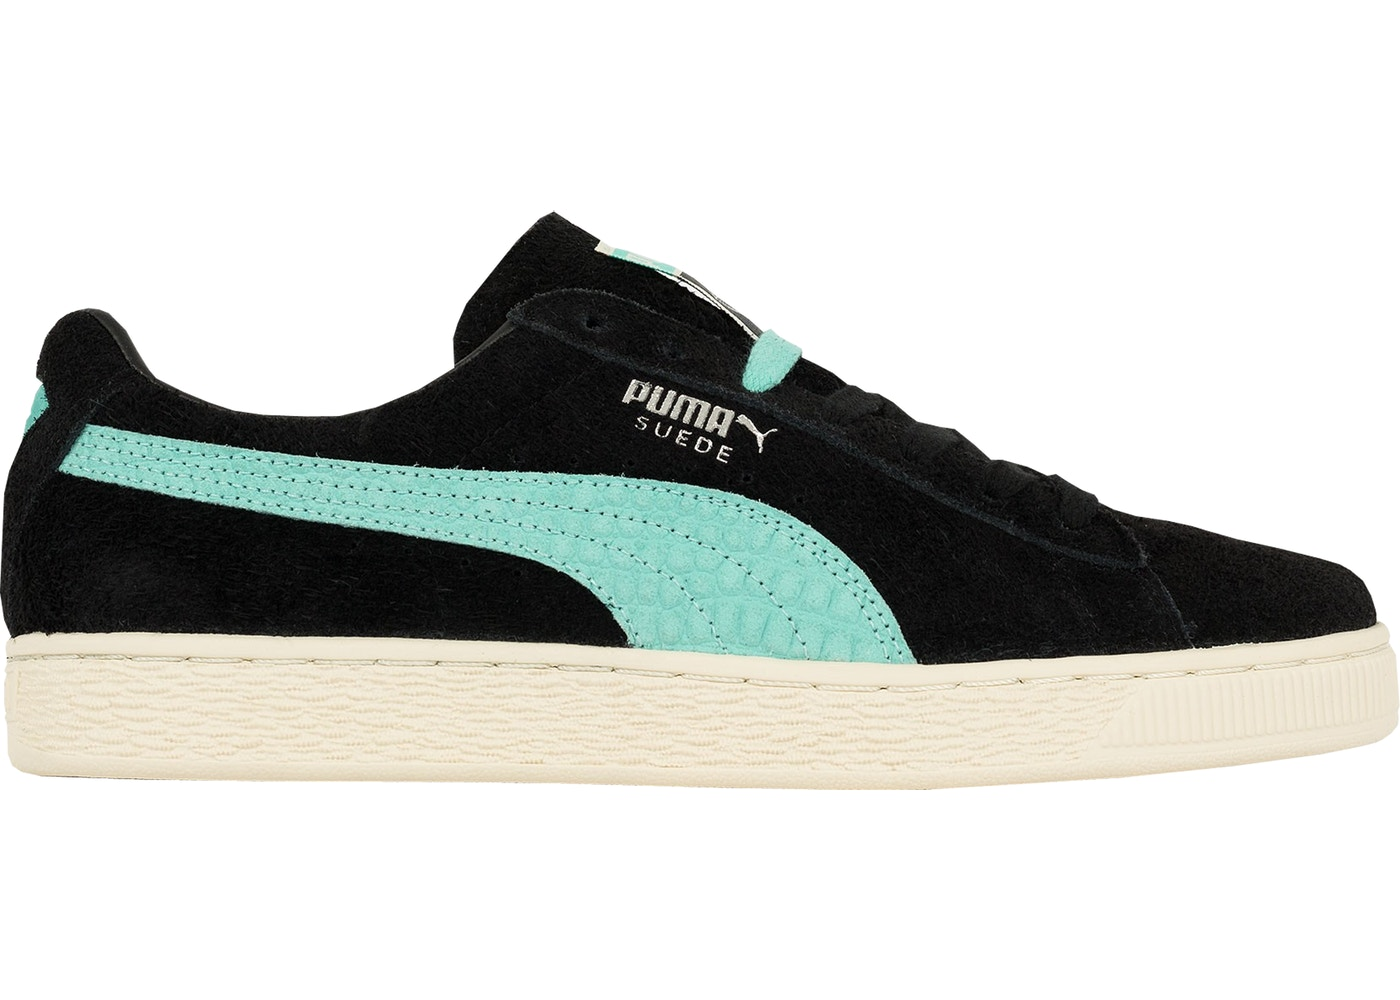 Puma Size 18 Shoes - Release Date 027662619